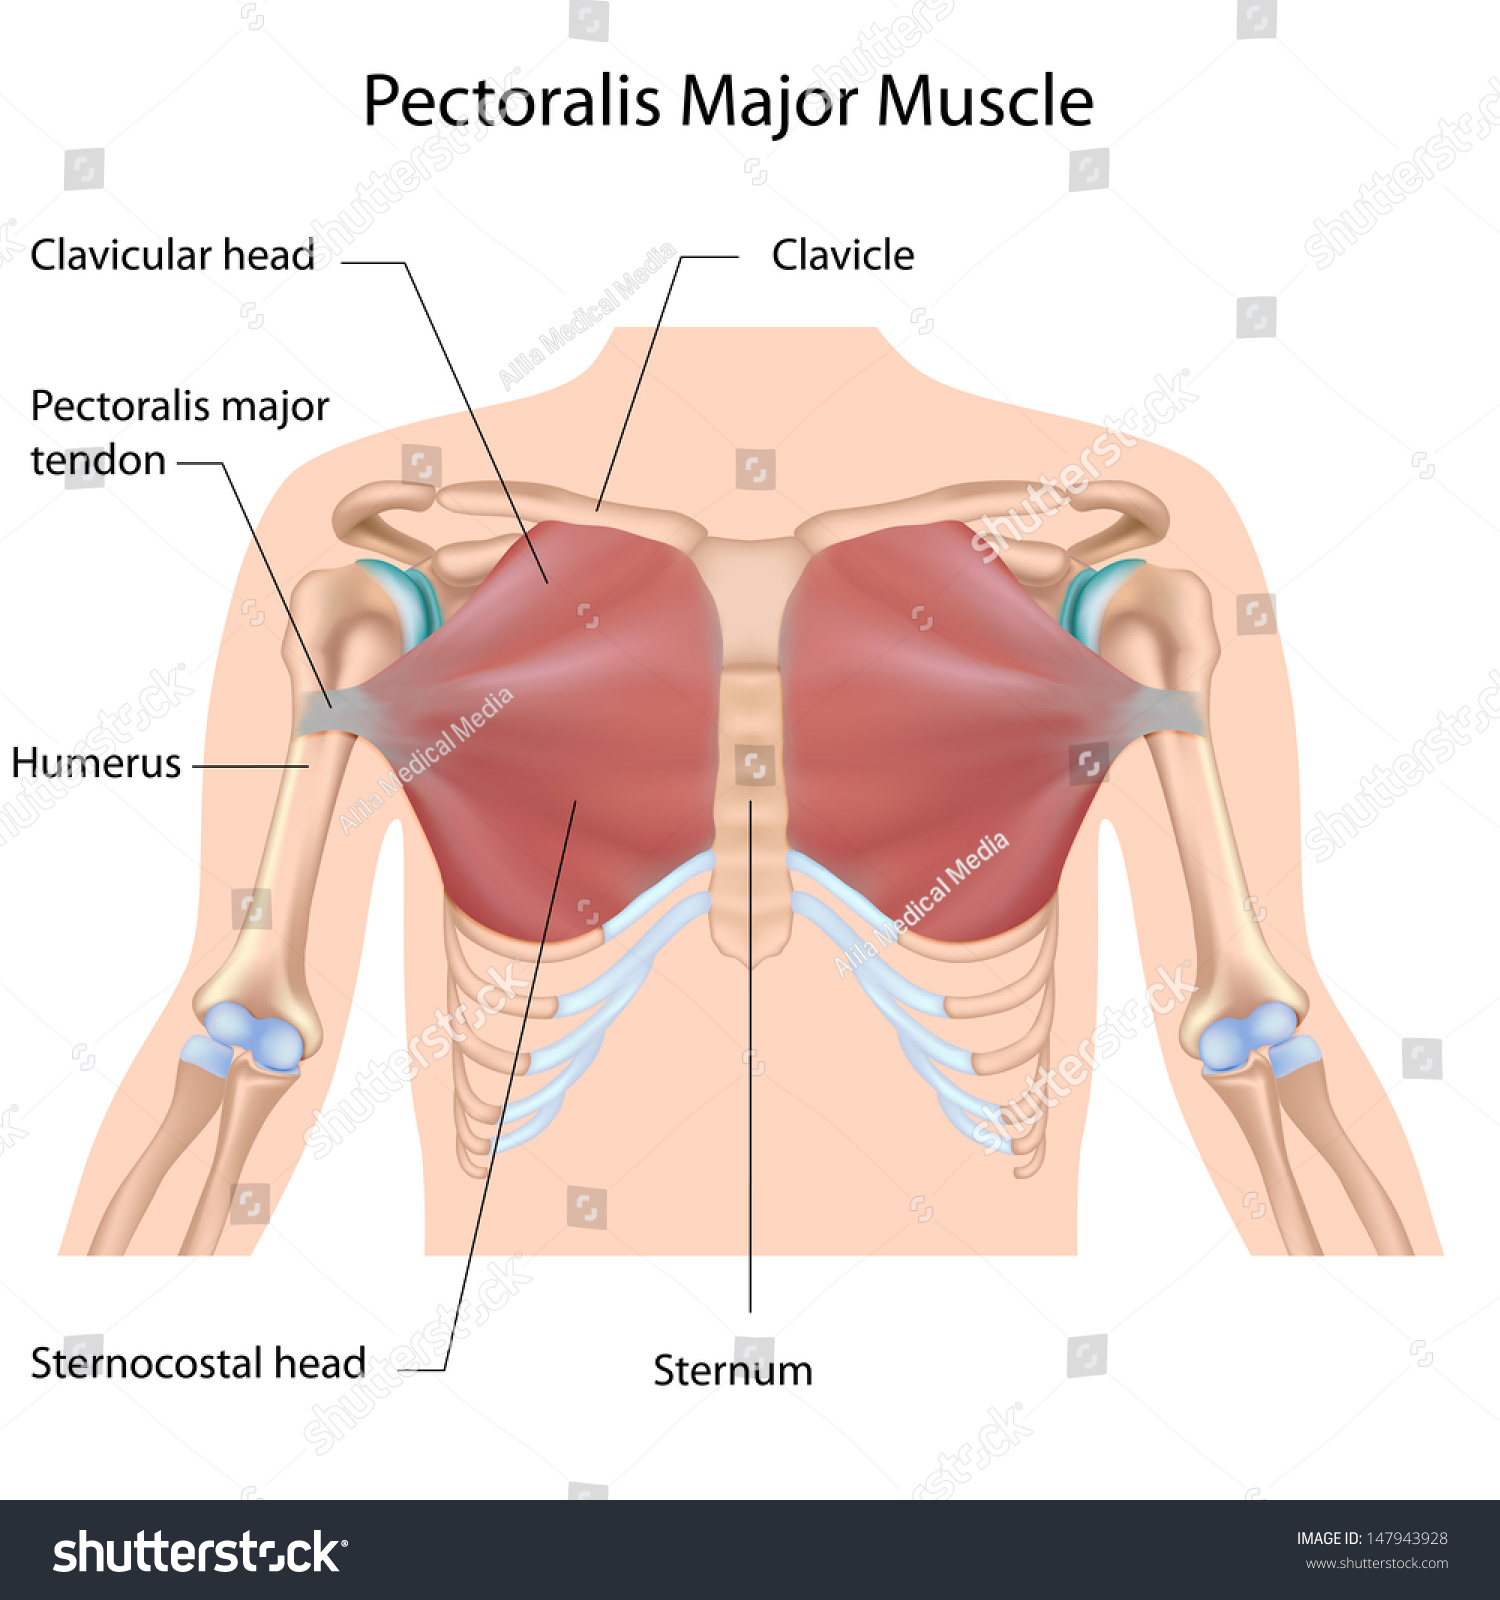 hight resolution of pectoralis major muscle labeled